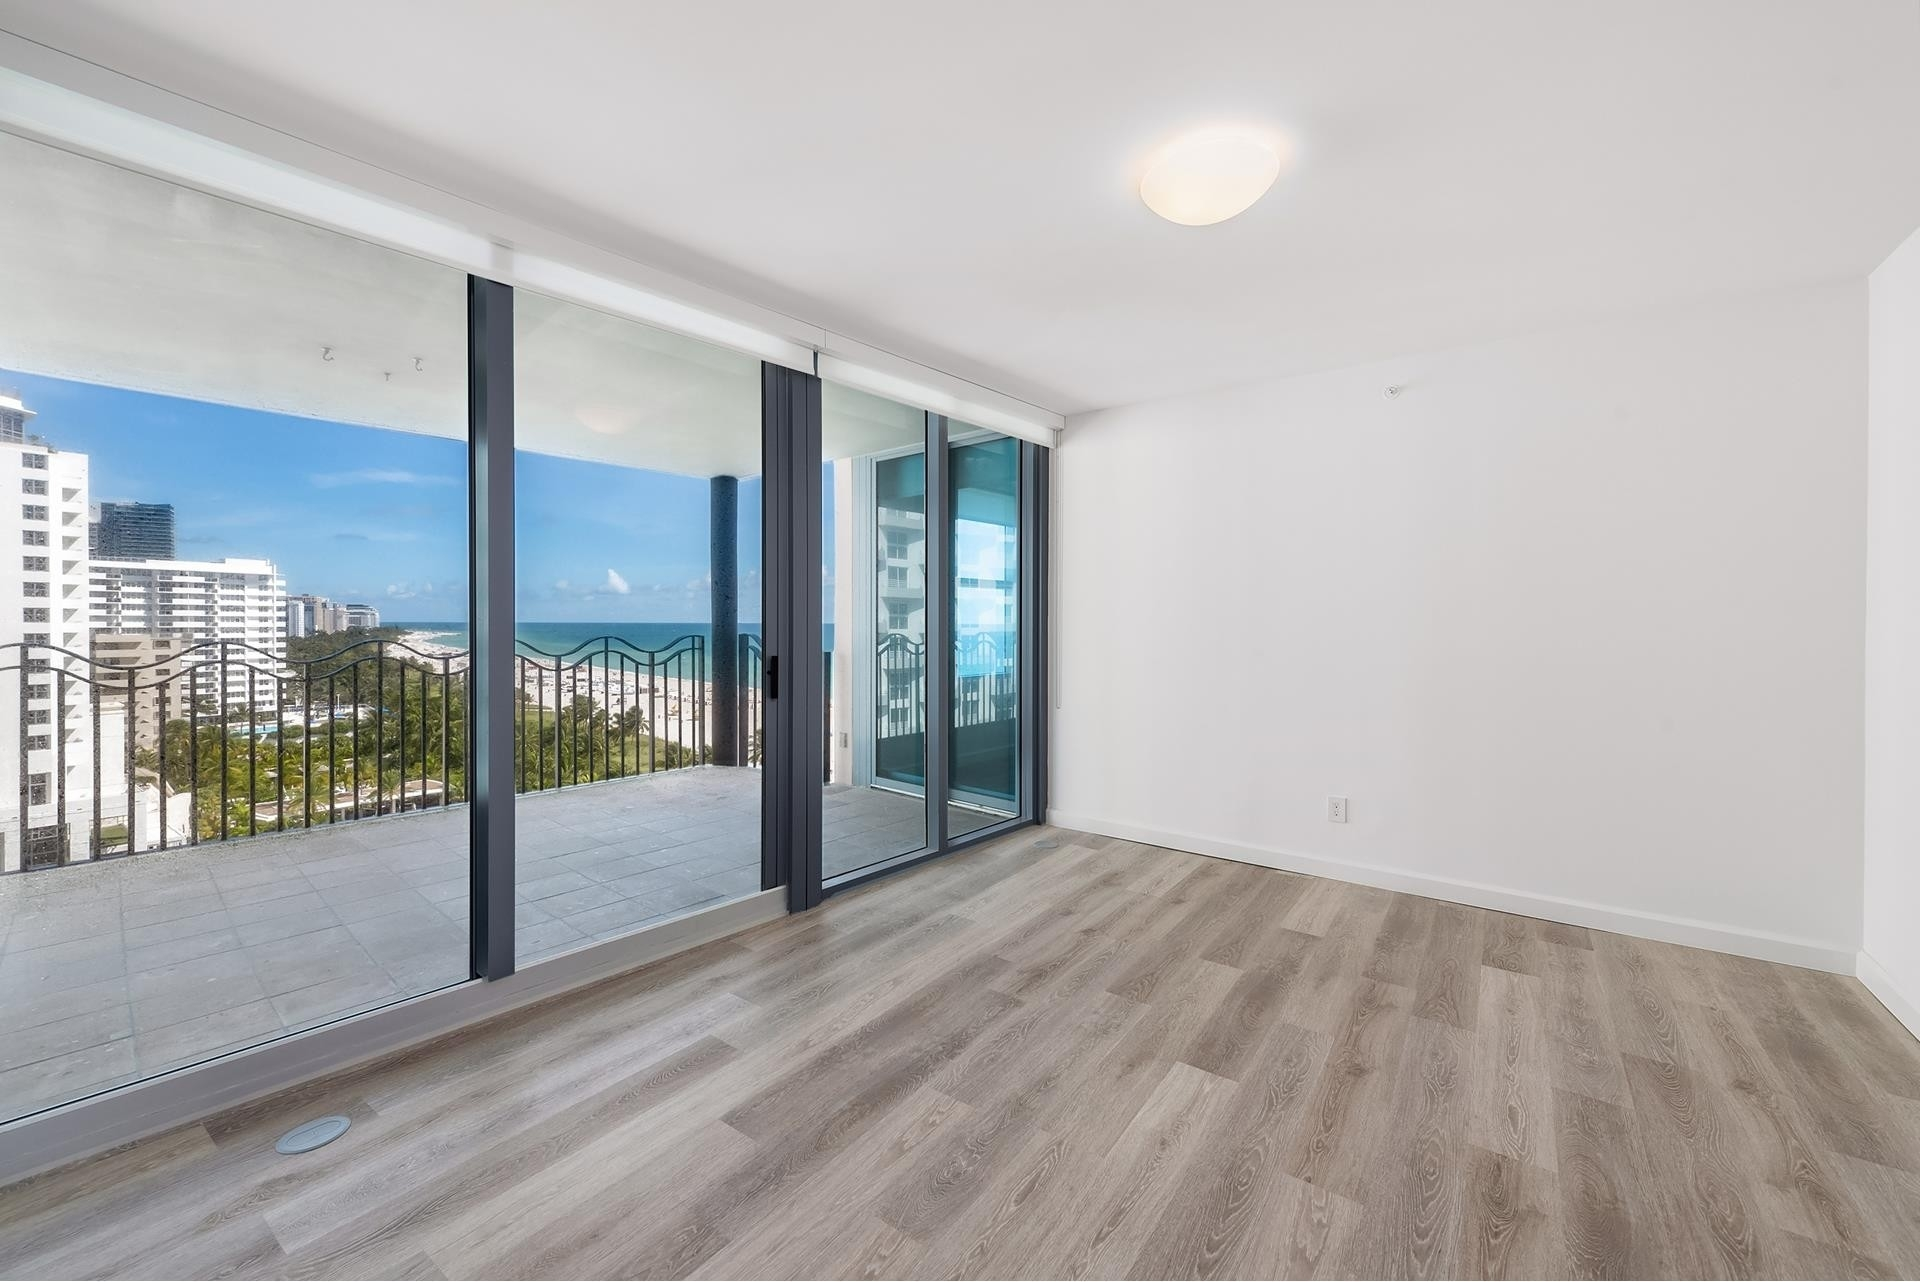 25. Condominiums for Sale at 1500 Ocean Dr , 1101 Miami Beach City Center, Miami Beach, FL 33139